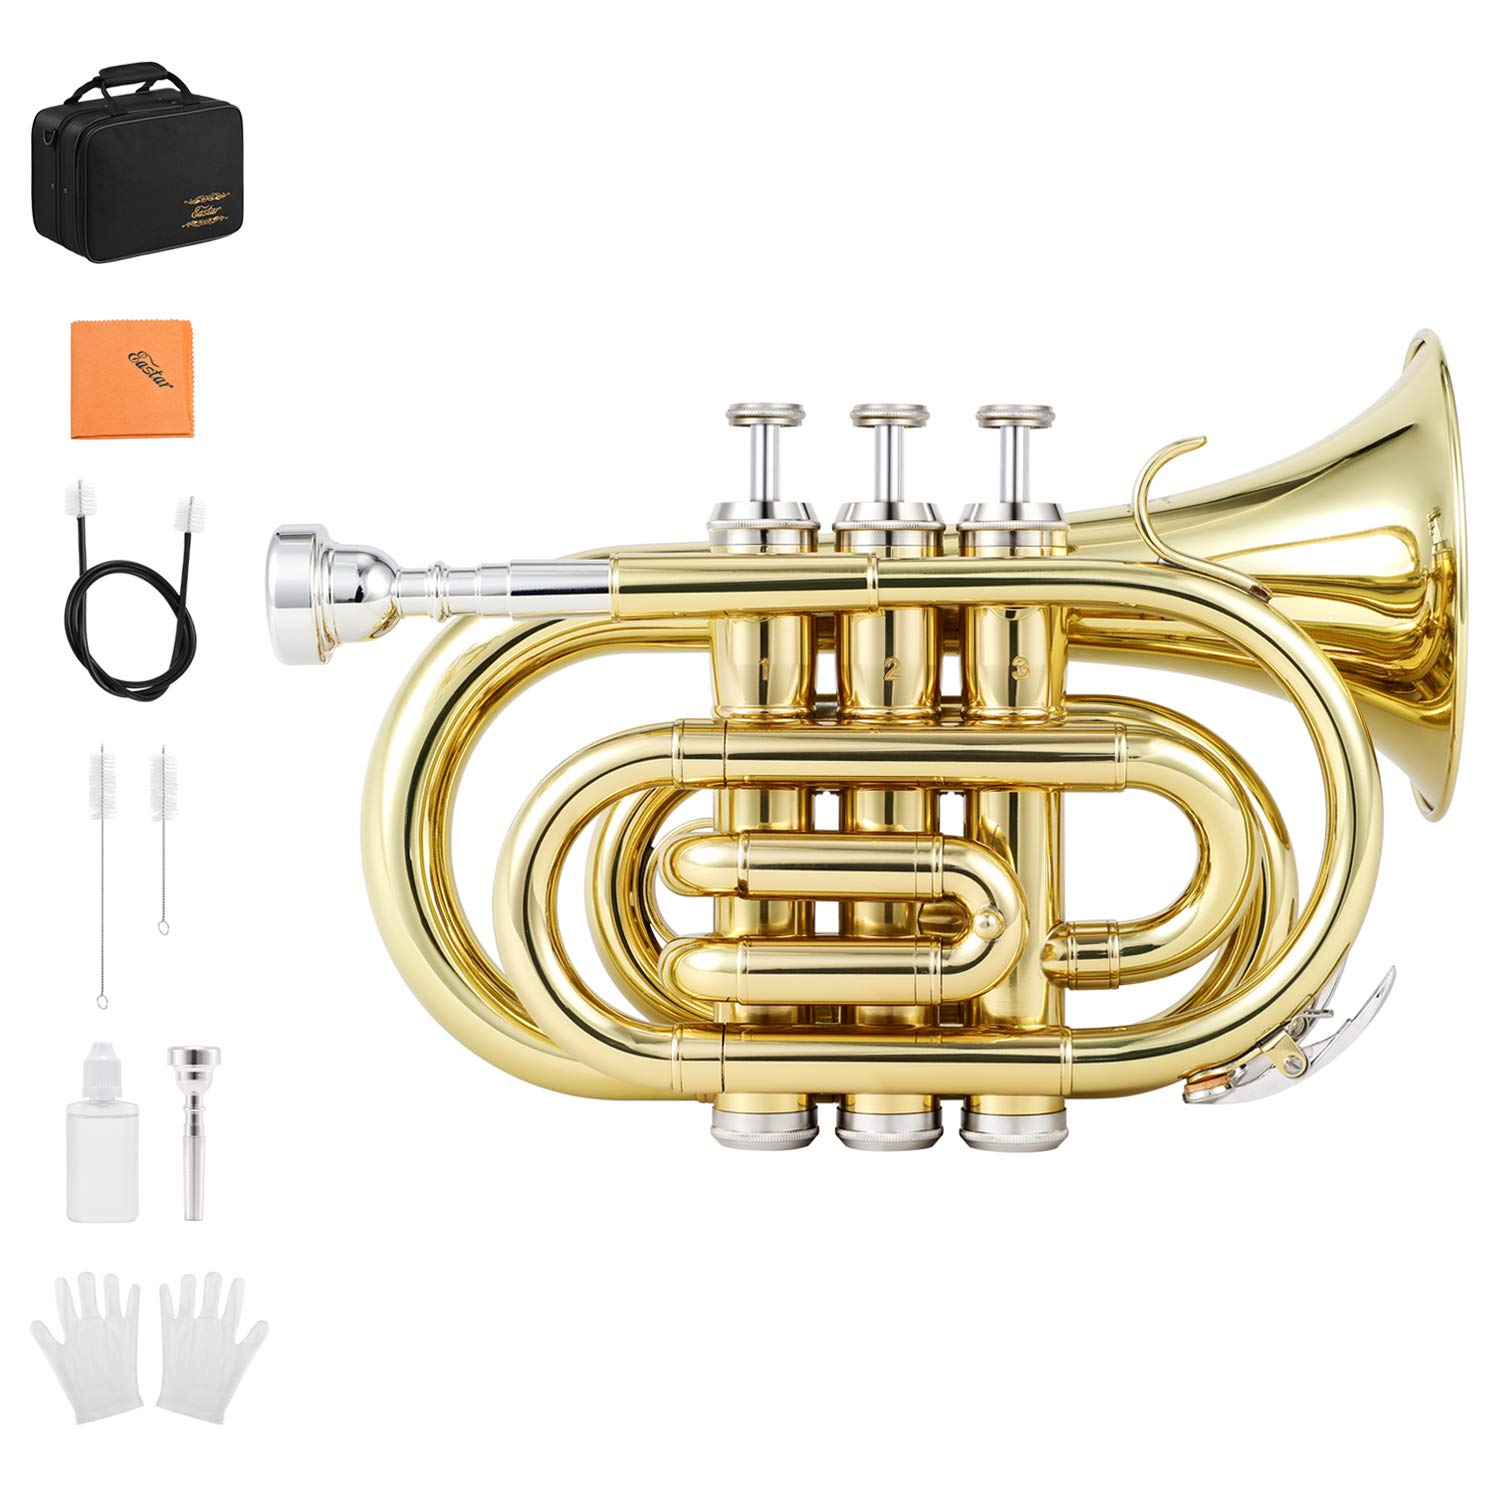 Eastar ETR-330 Pocket Trumpet Bb Gold Lacquer Mini Trumpet B Flat with Hard Case, Gloves, 7 C Mouthpiece, Valve Oil, Trumpet Cleaning Kit by Eastar